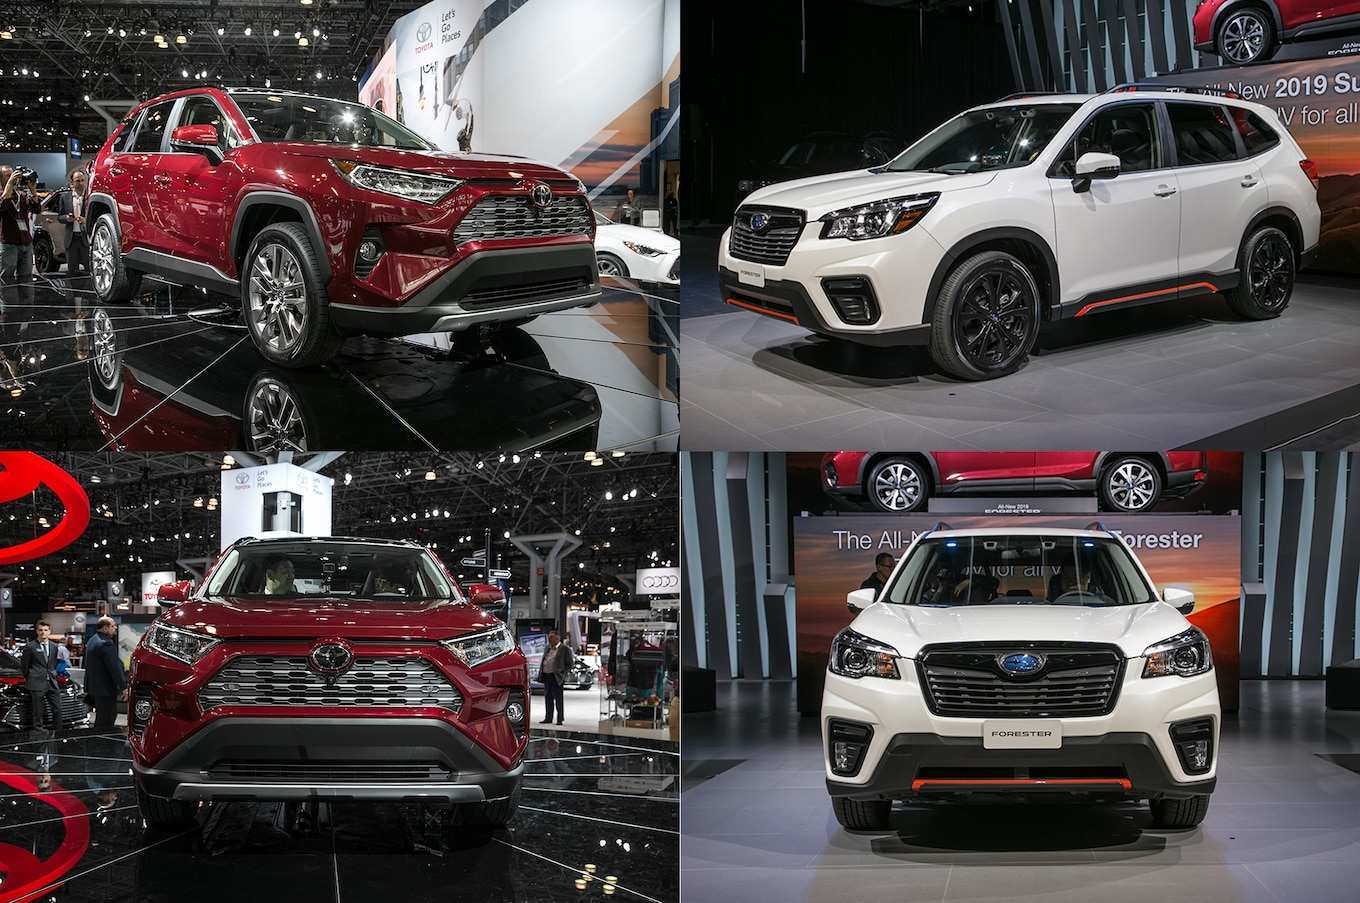 52 Best Subaru Forester 2019 Ground Clearance Redesign